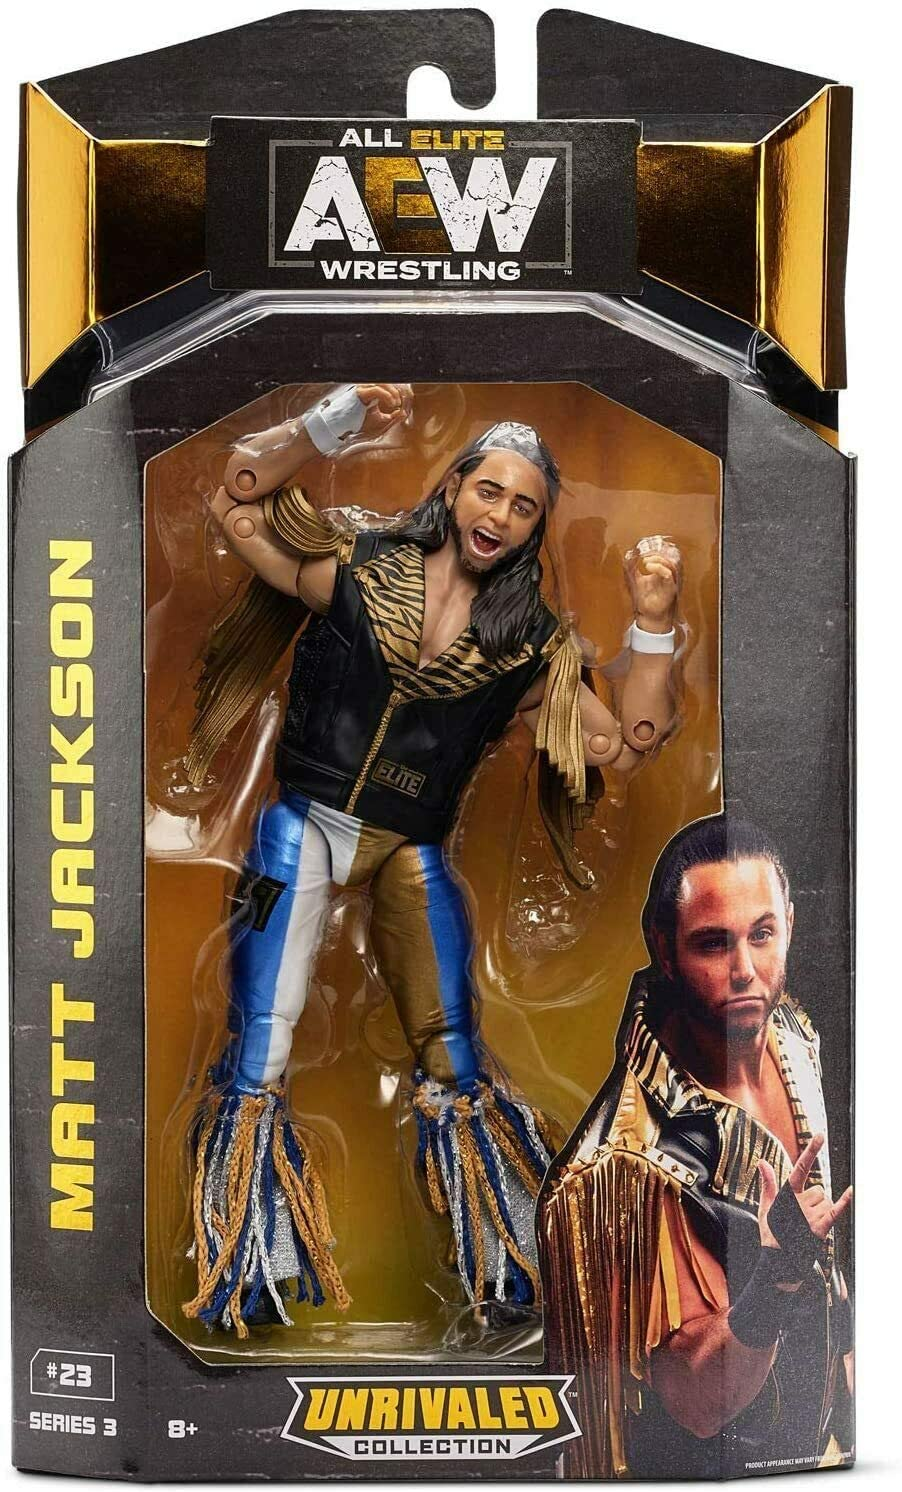 AEW All Elite Wrestling Unrivaled Collection